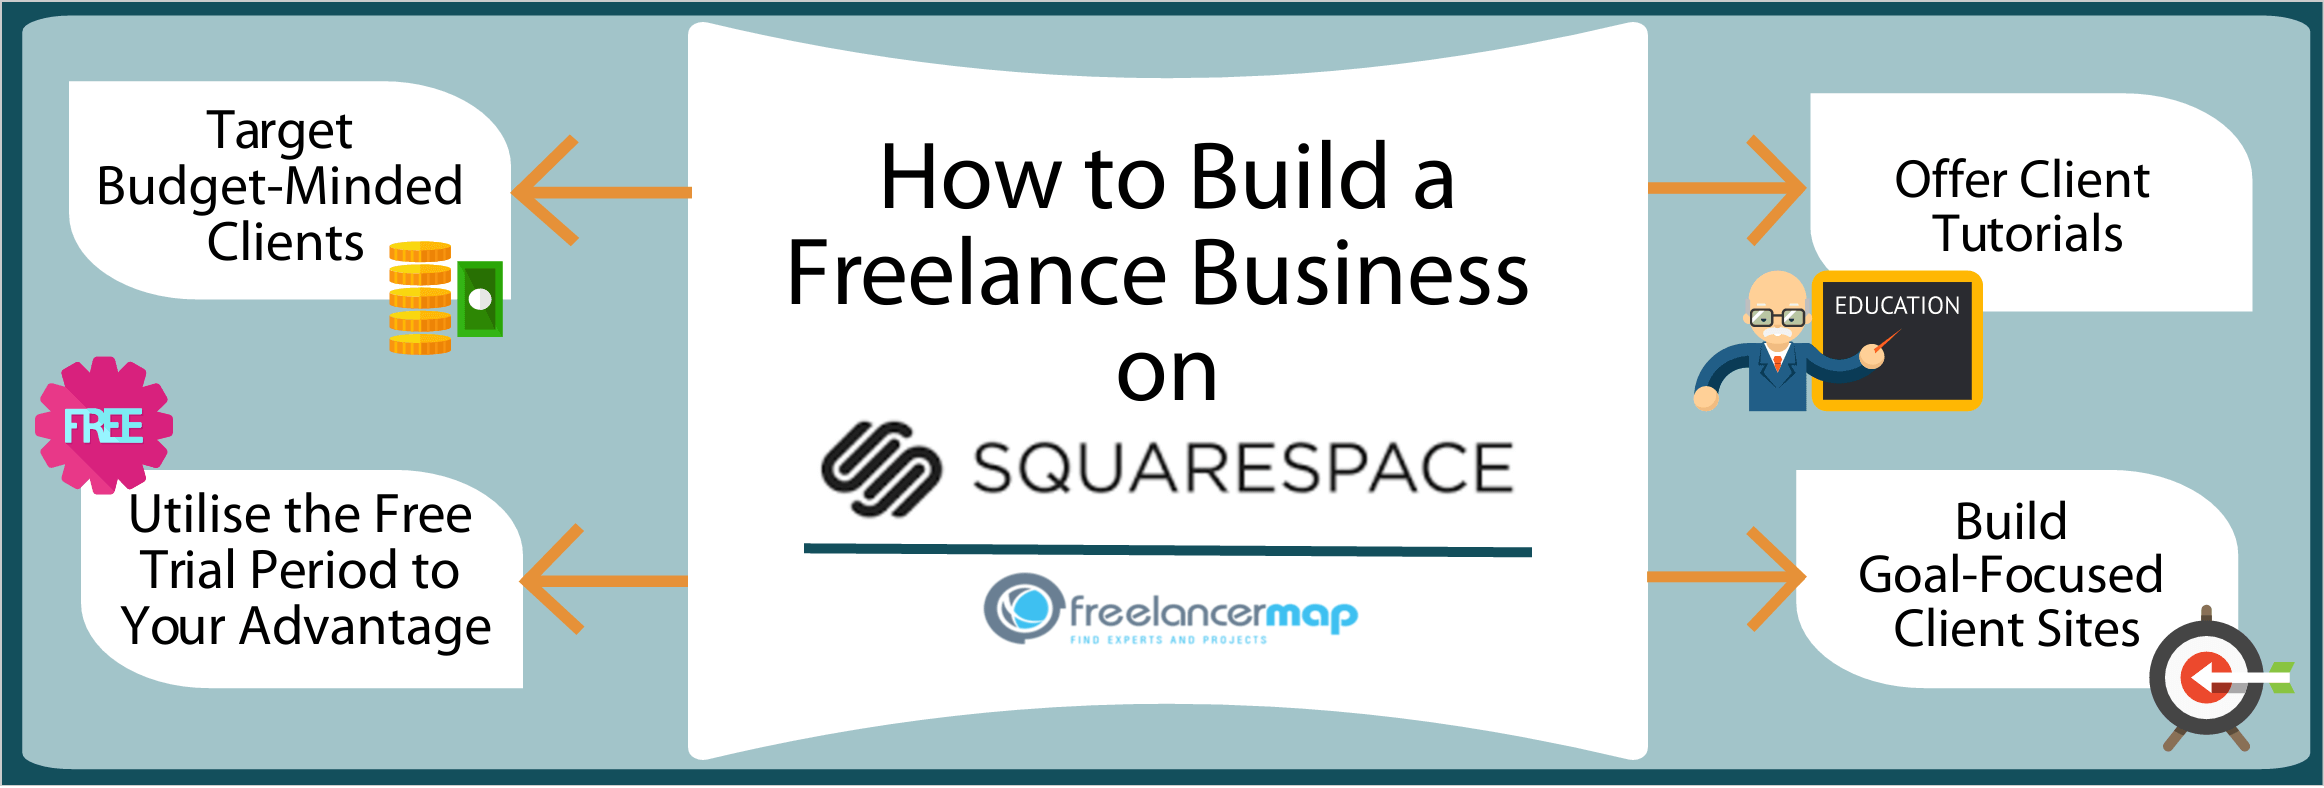 How to build a freelance business on Squarespace - Becoming a Freelance Squarespace designer